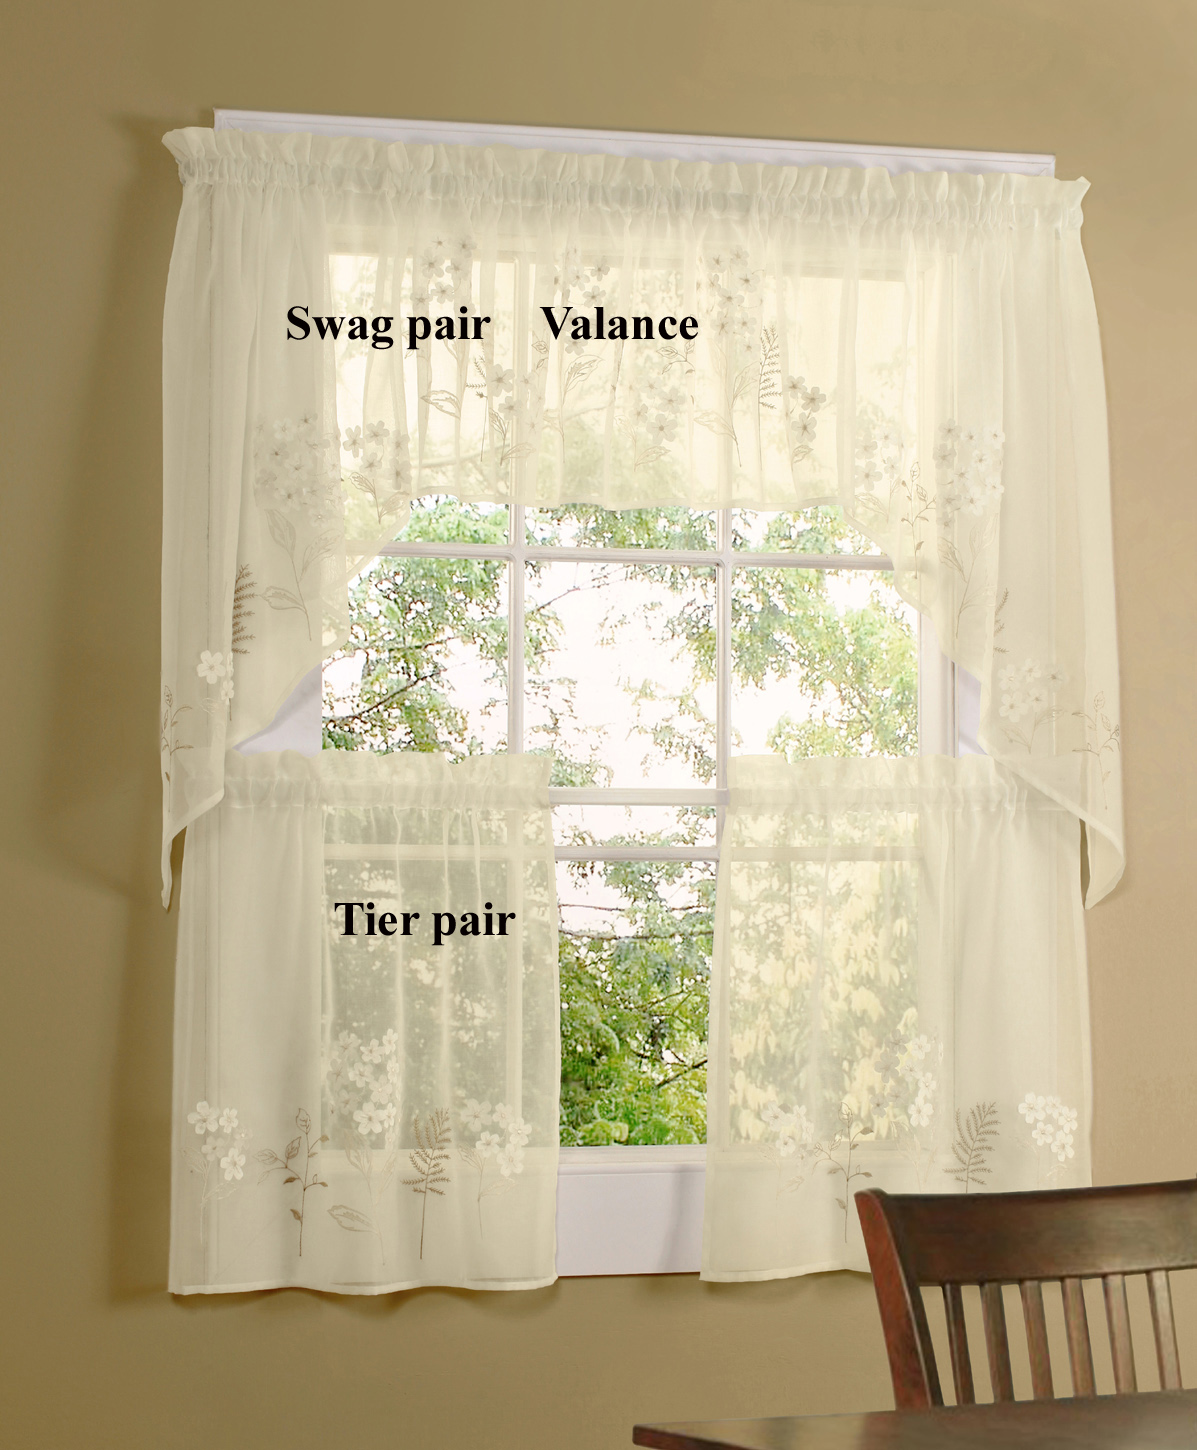 Hydrangea Semi-Sheer Tiers, Valance, and Swag